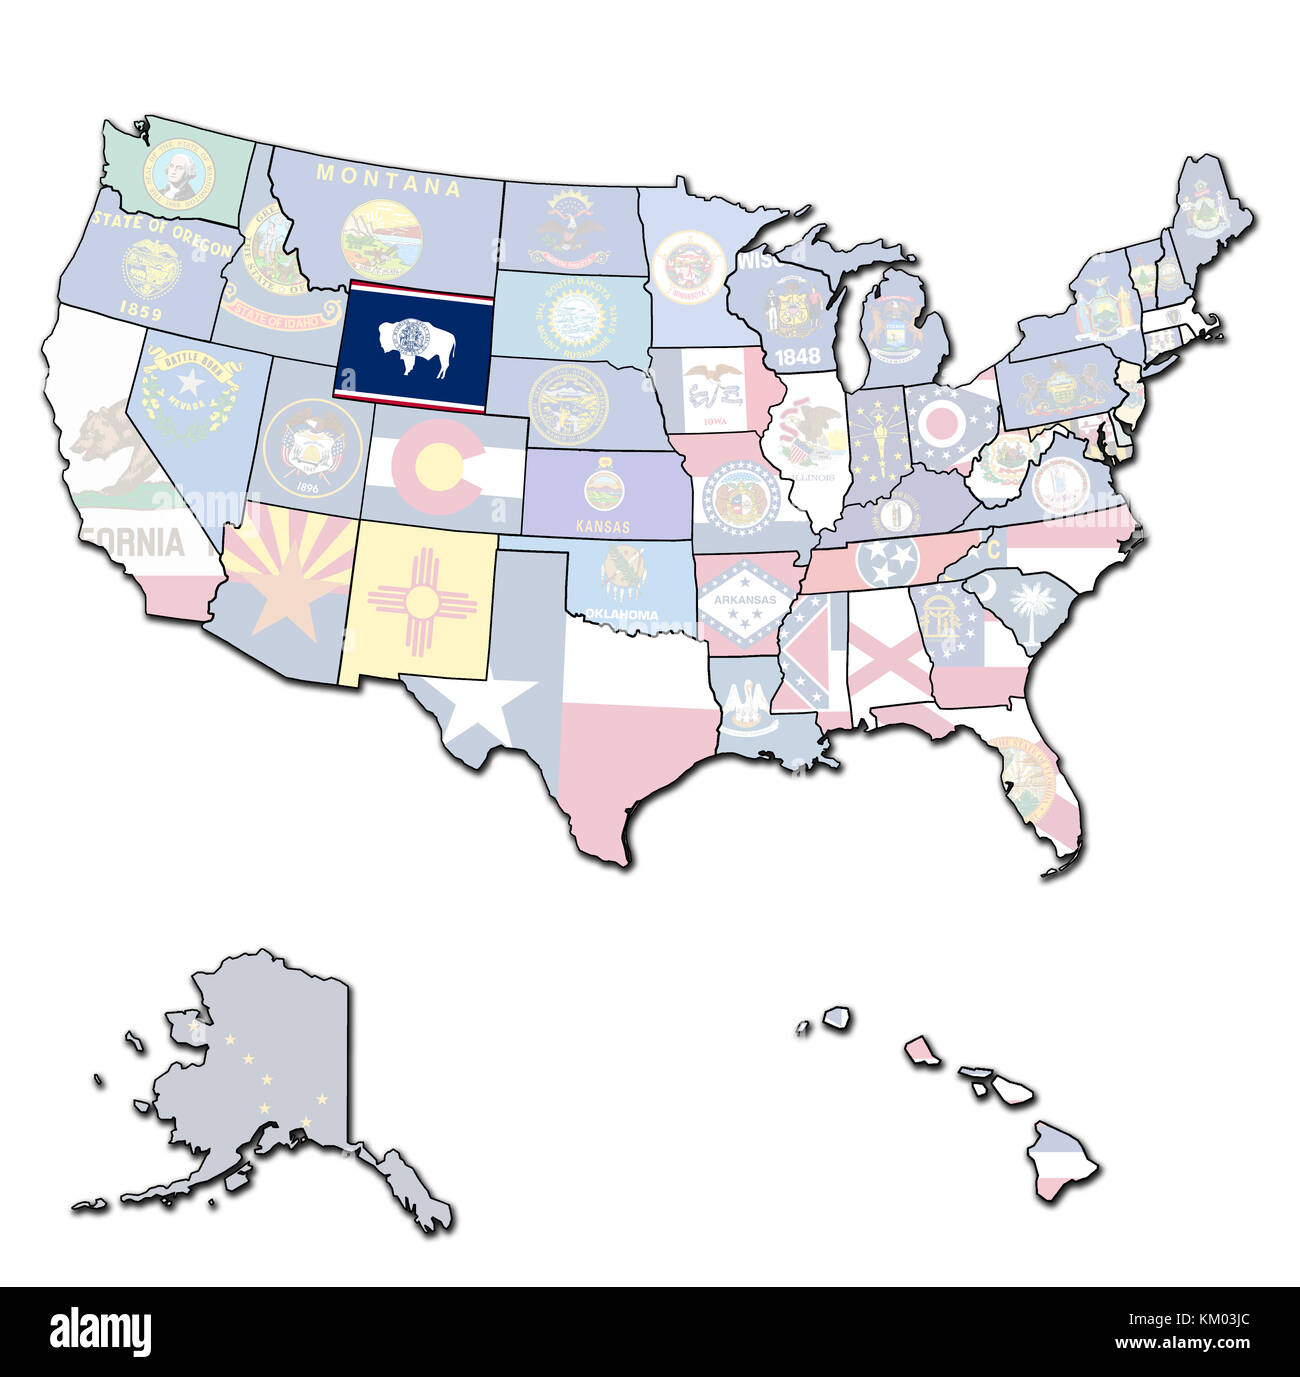 united states map wyoming Wyoming On Isolated Map Of United States Of America With State